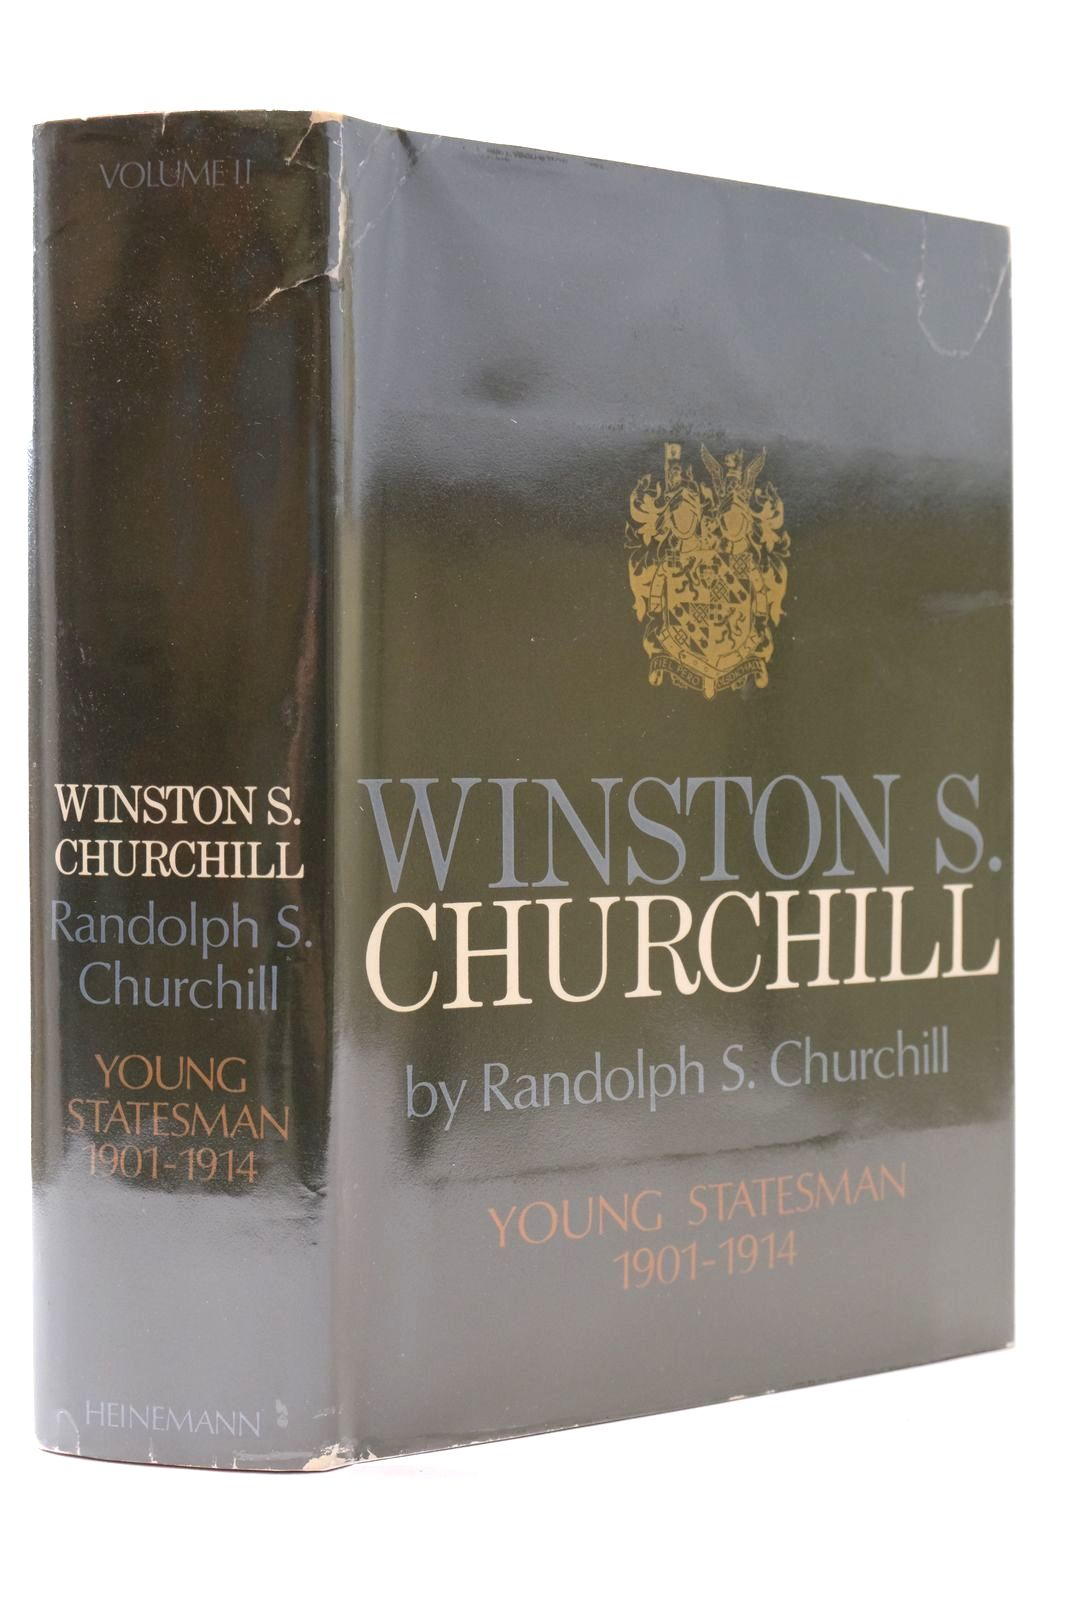 Photo of WINSTON S. CHURCHILL VOLUME II YOUNG STATESMAN 1901-1914- Stock Number: 2132684